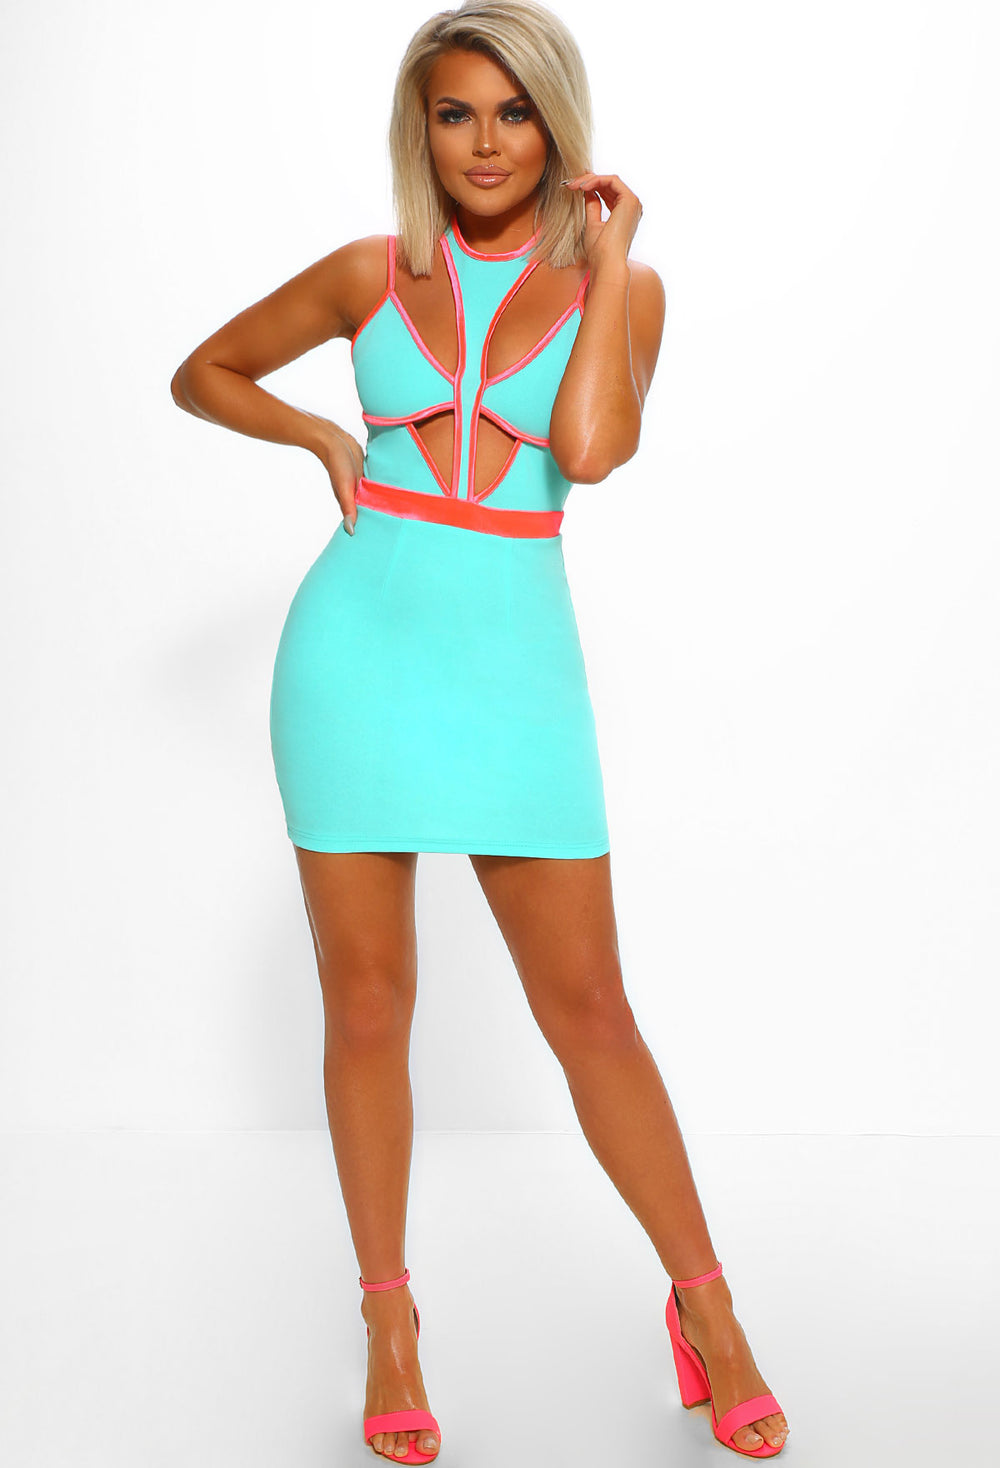 Ibiza Crush Turquoise Halterneck Cut Out Bodycon Mini Dress